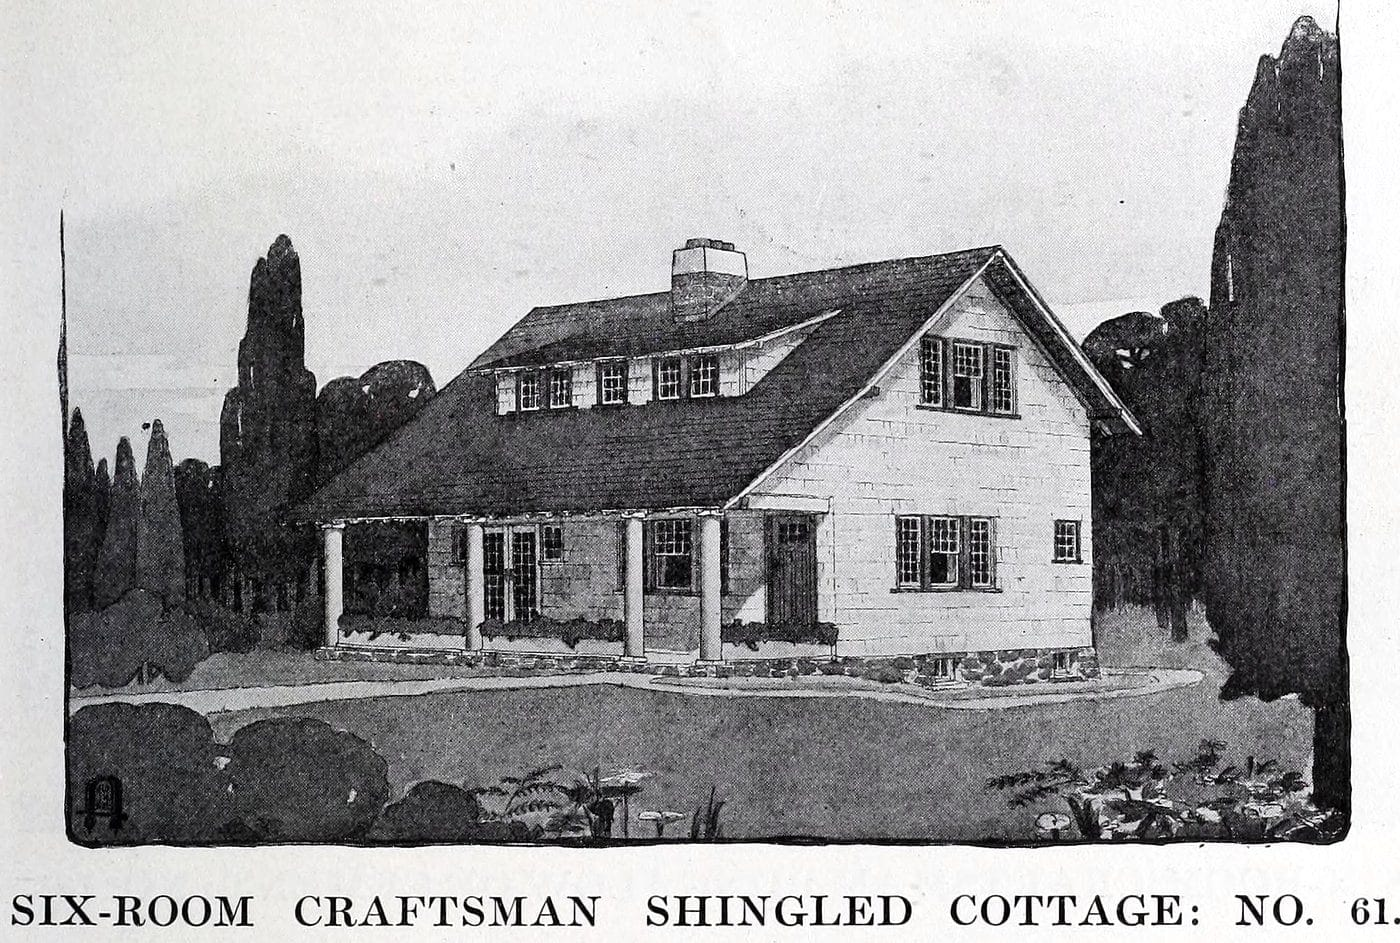 Old Craftsman-style home (17)